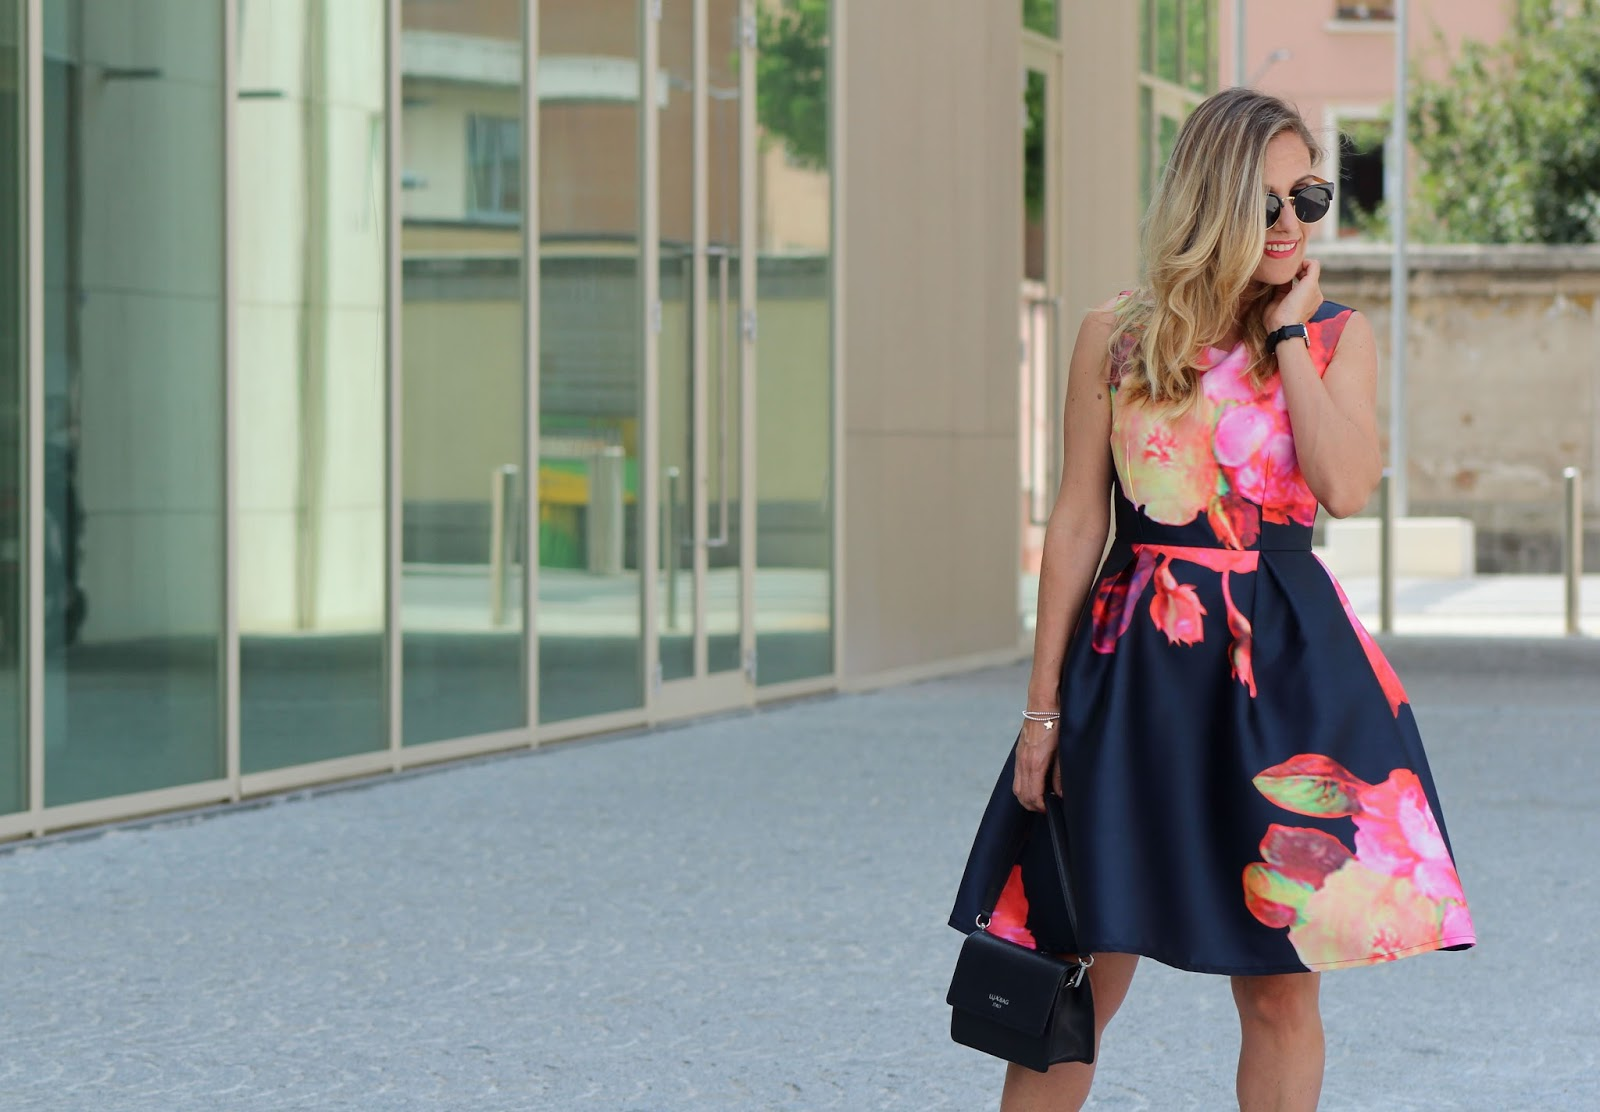 Eniwhere Fashion - Floral dress - SheIn